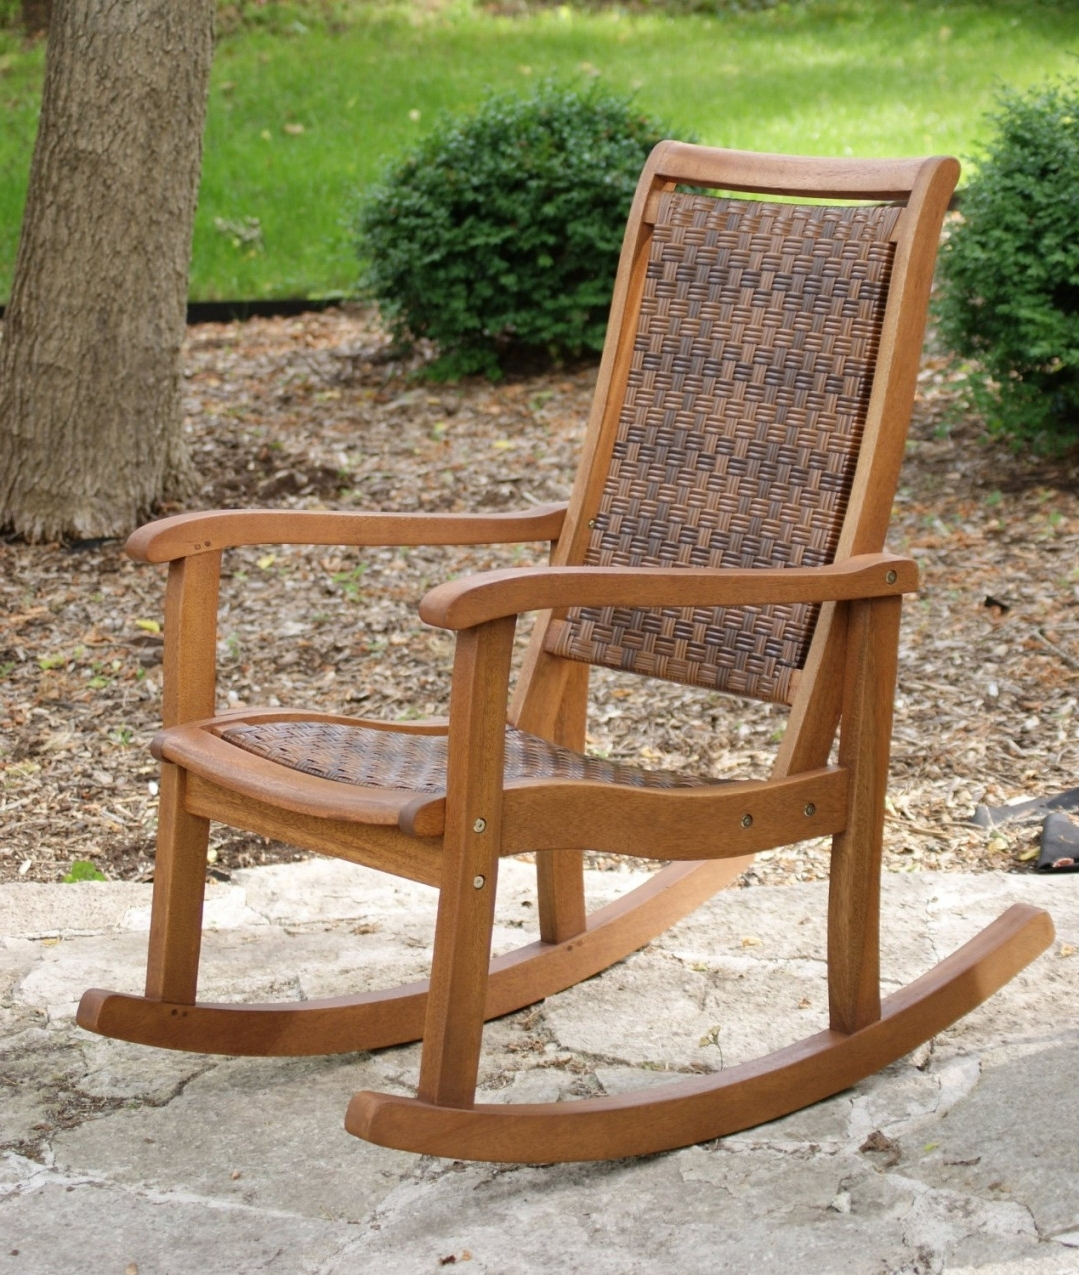 Great Patio Rocking Chairs : Spectacular And Sensational Patio Inside Recent Wooden Patio Rocking Chairs (Gallery 7 of 20)